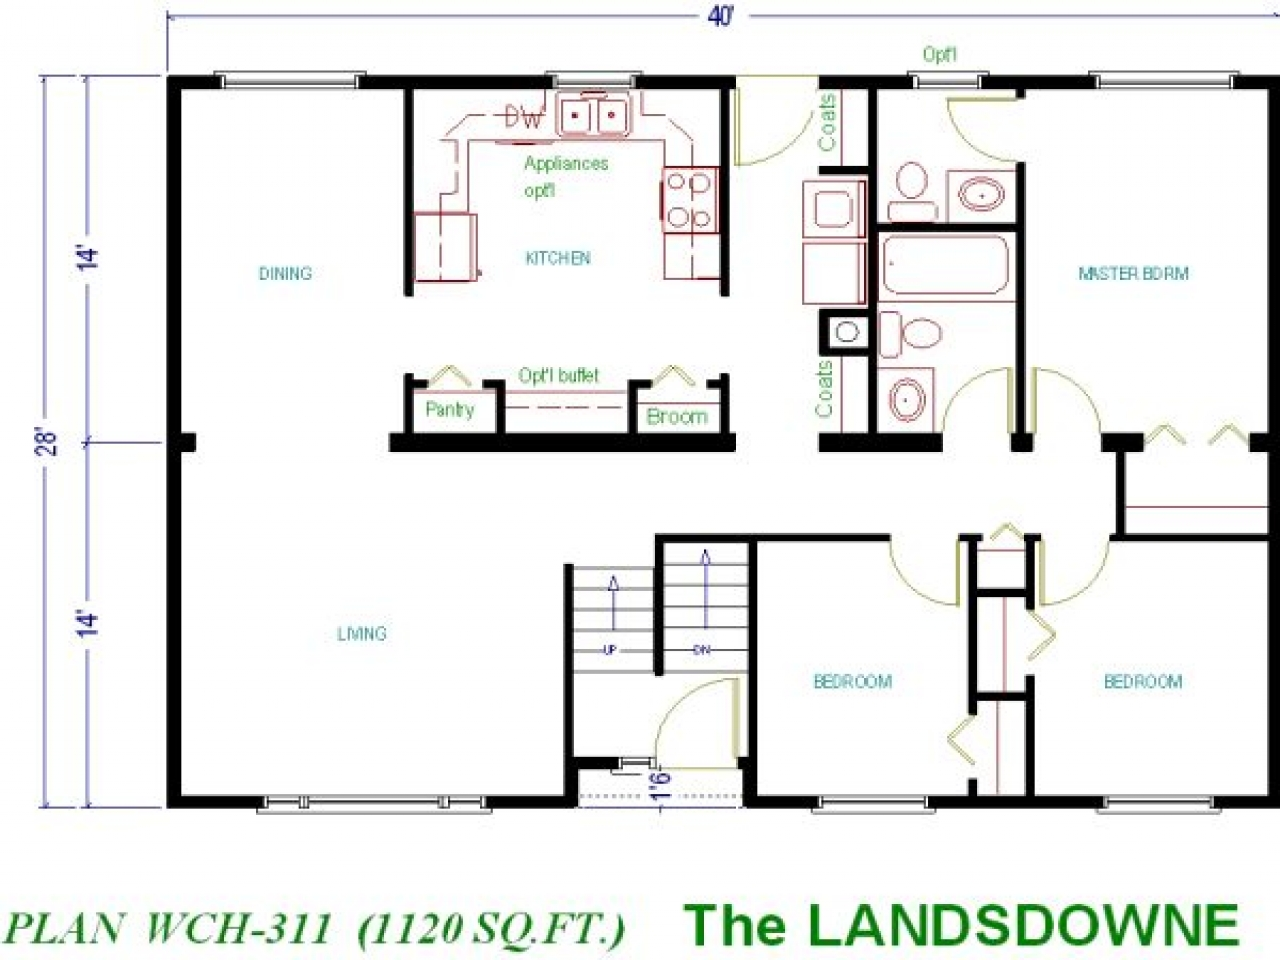 1000 Sq Ft Ranch Plans House Plans Under 1000 Sq Ft Small